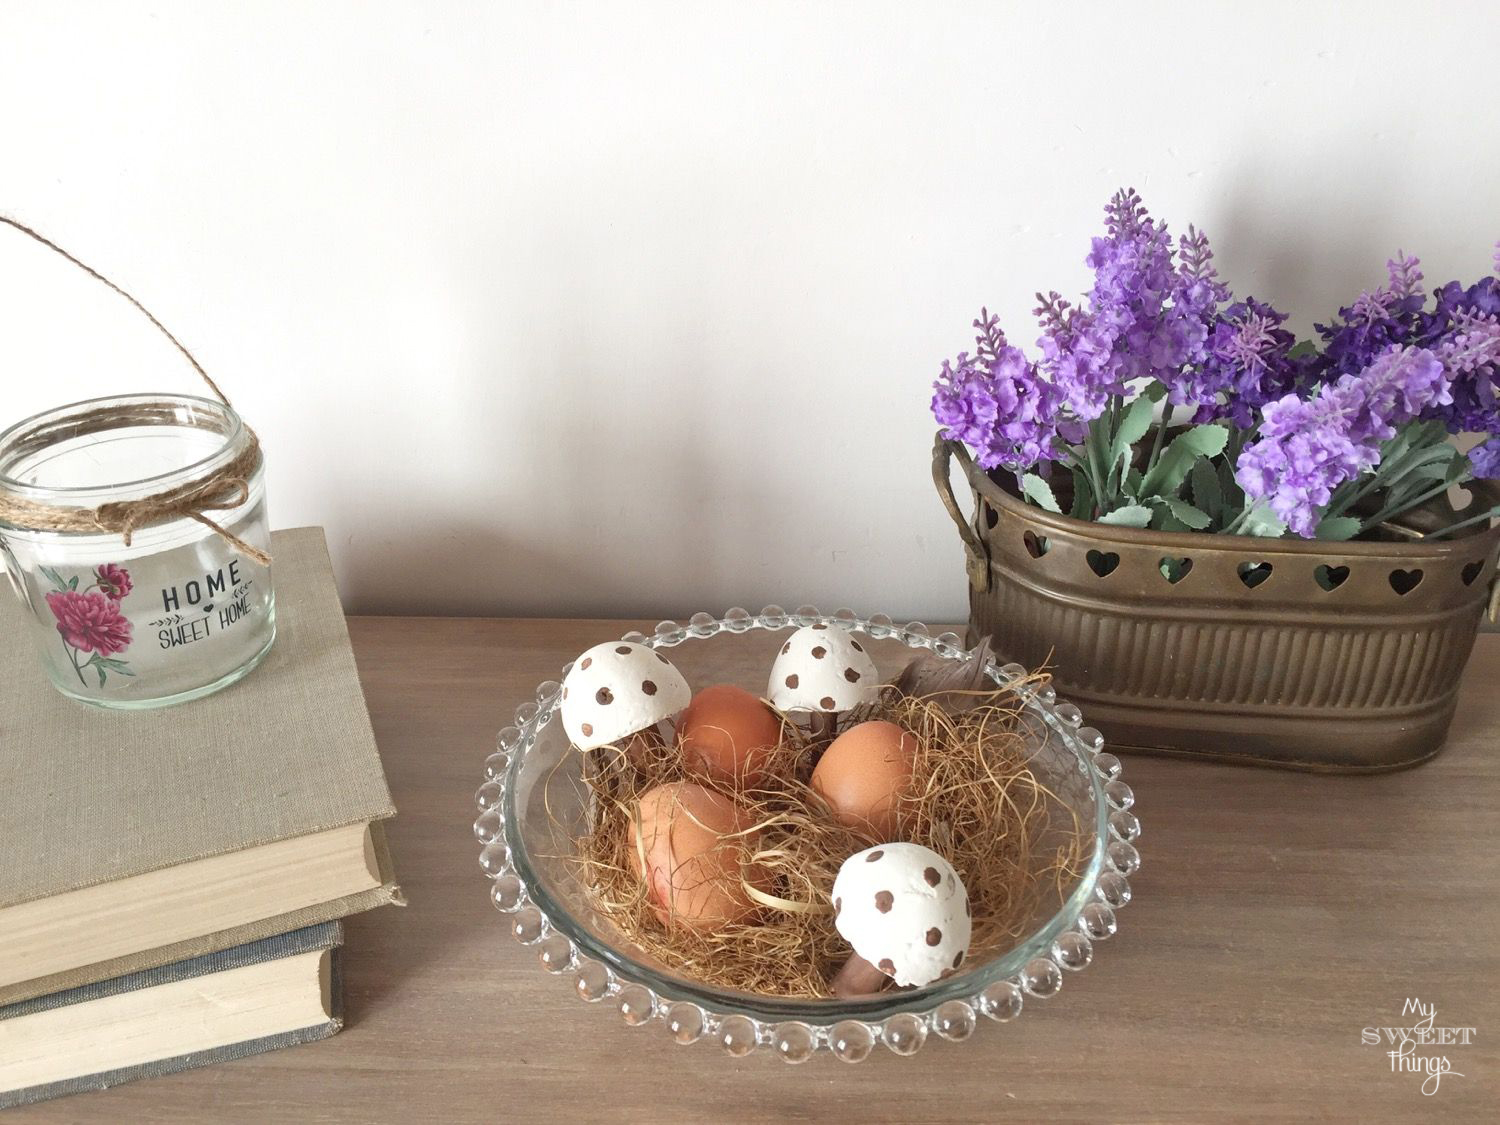 DIY Cement Mushrooms · Easter vignette · Via www.sweethings.net